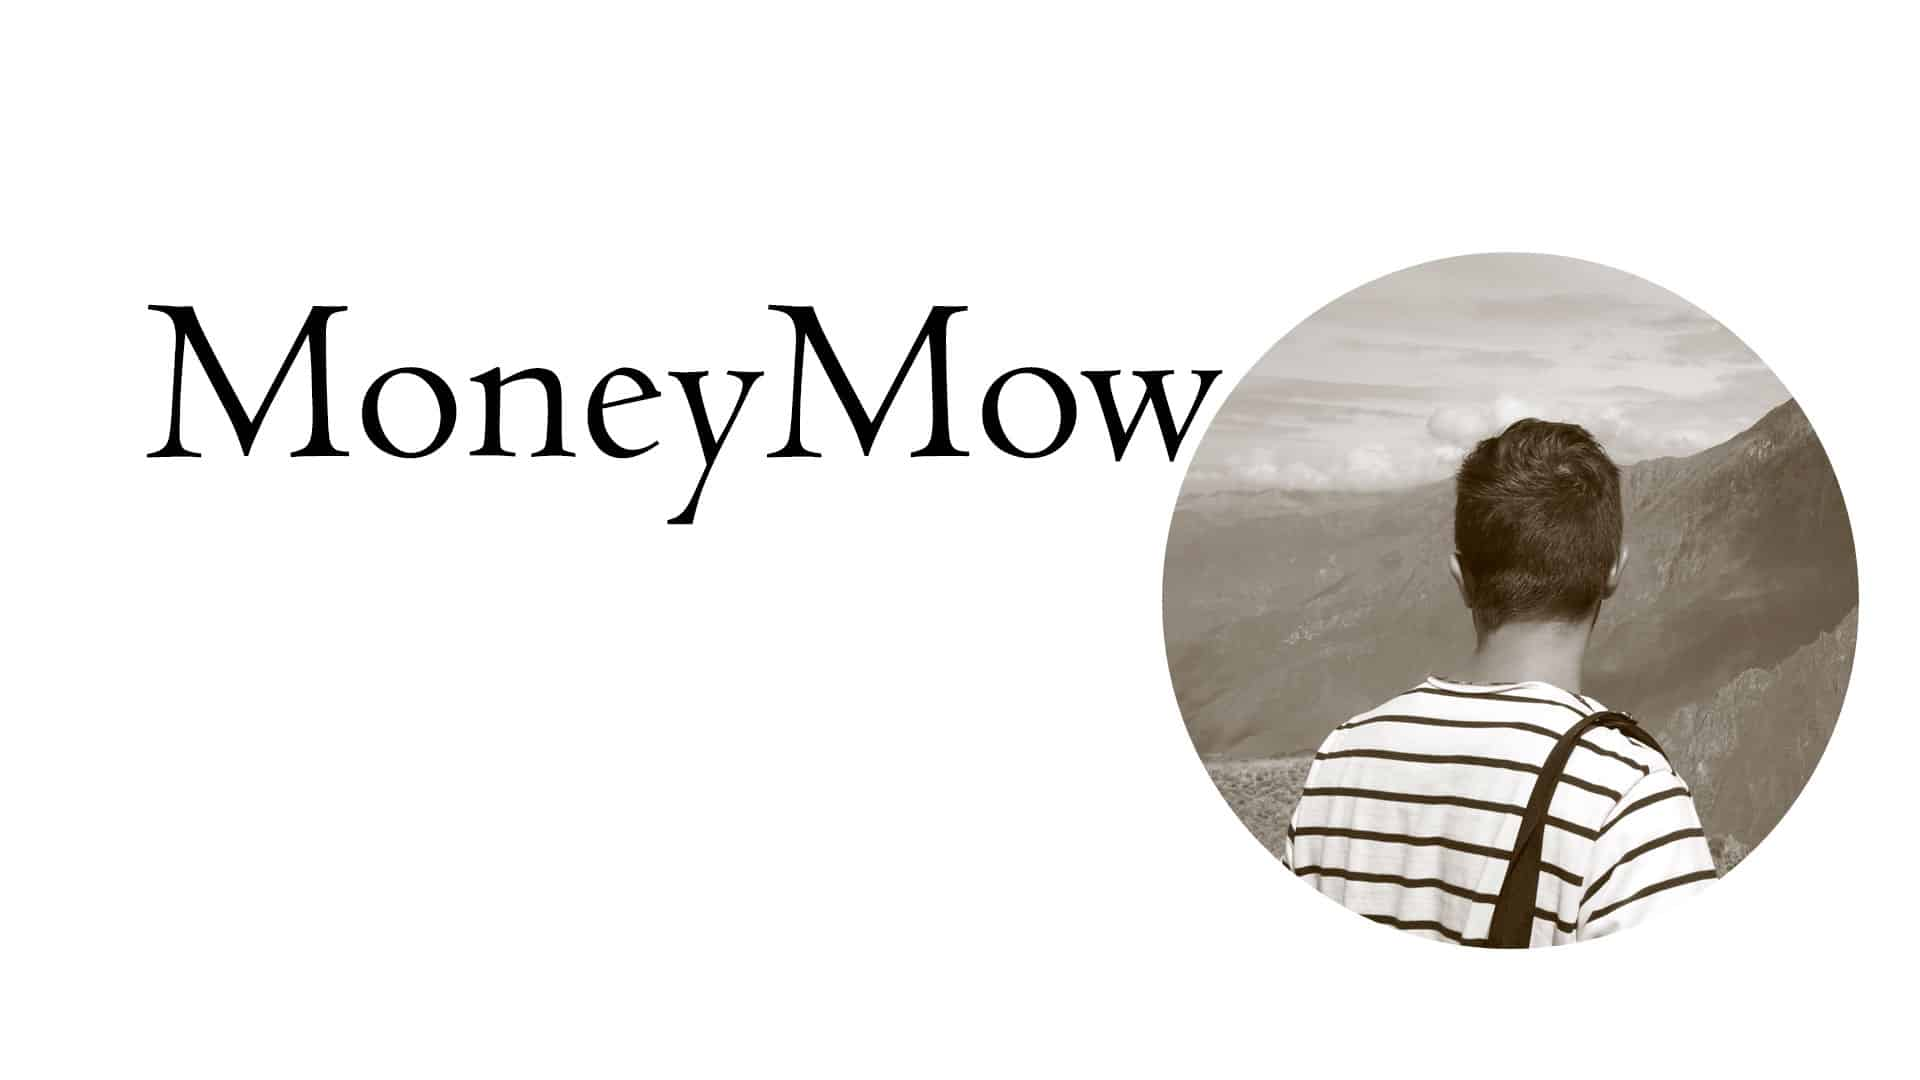 Carl from personal finance blog MoneyMow